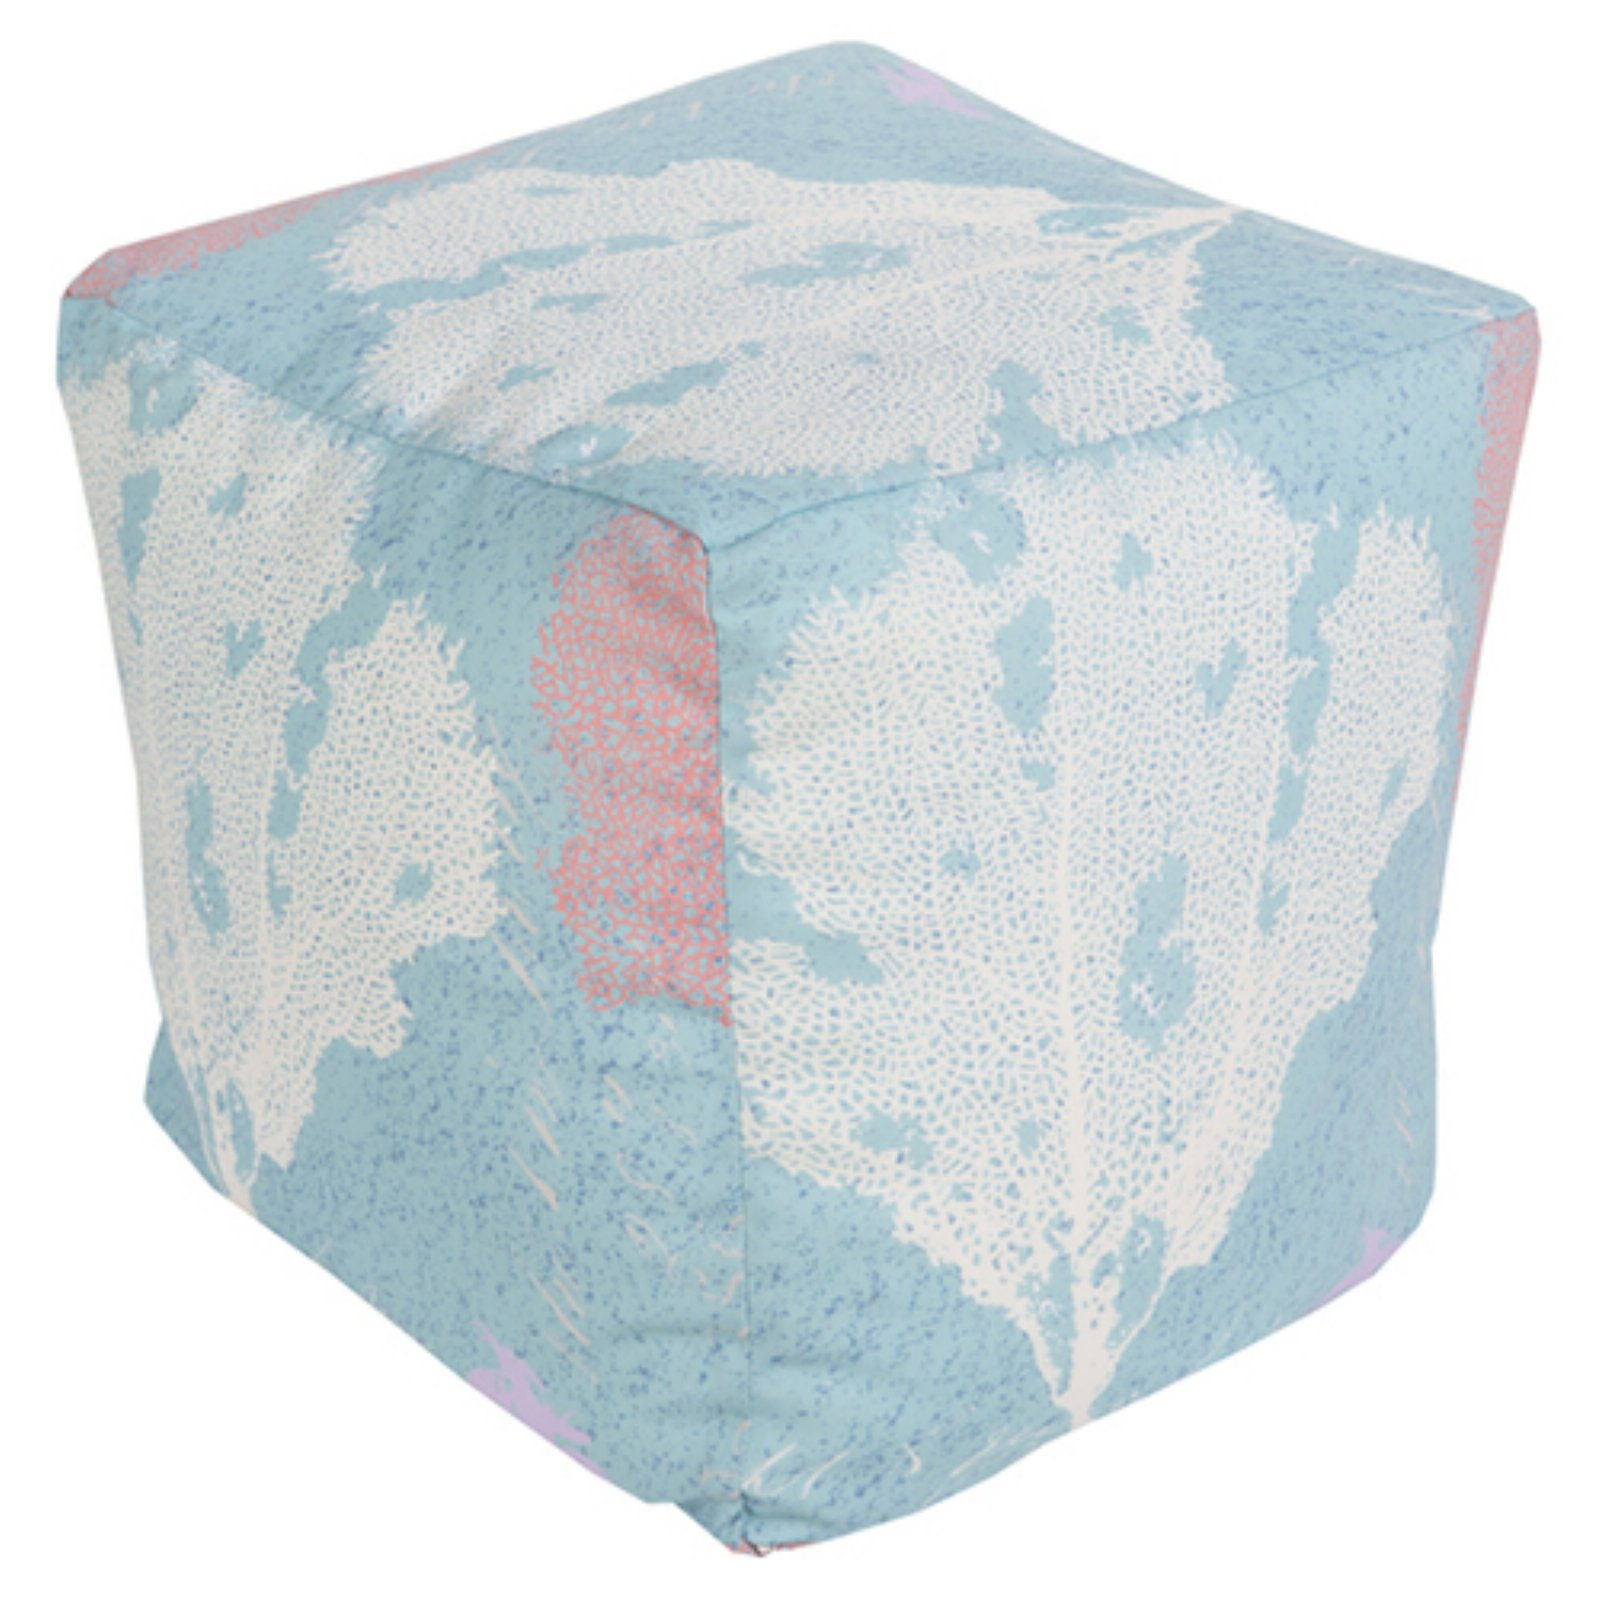 Surya 18 x 18 in. Outdoor Coral Cube Pouf by Surya